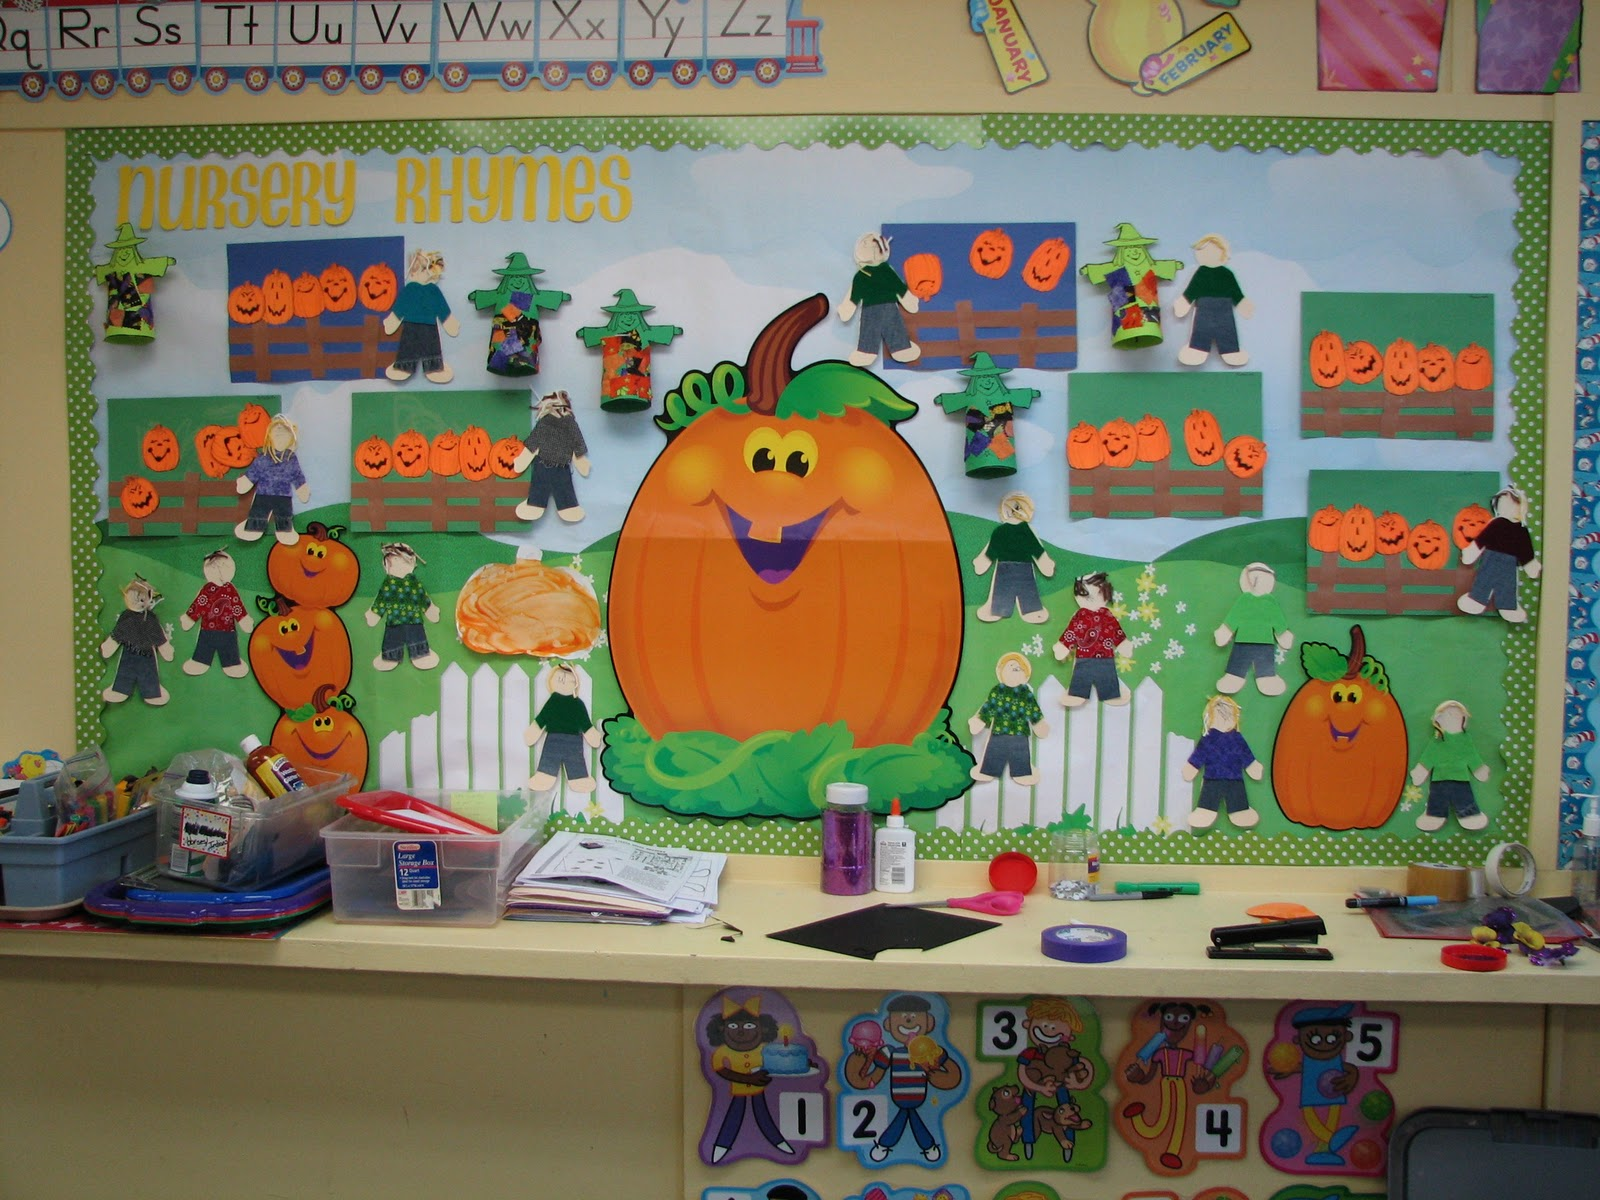 October Bulletin Board Ideas Preschool http://terrific2s.blogspot.com/2011_11_01_archive.html